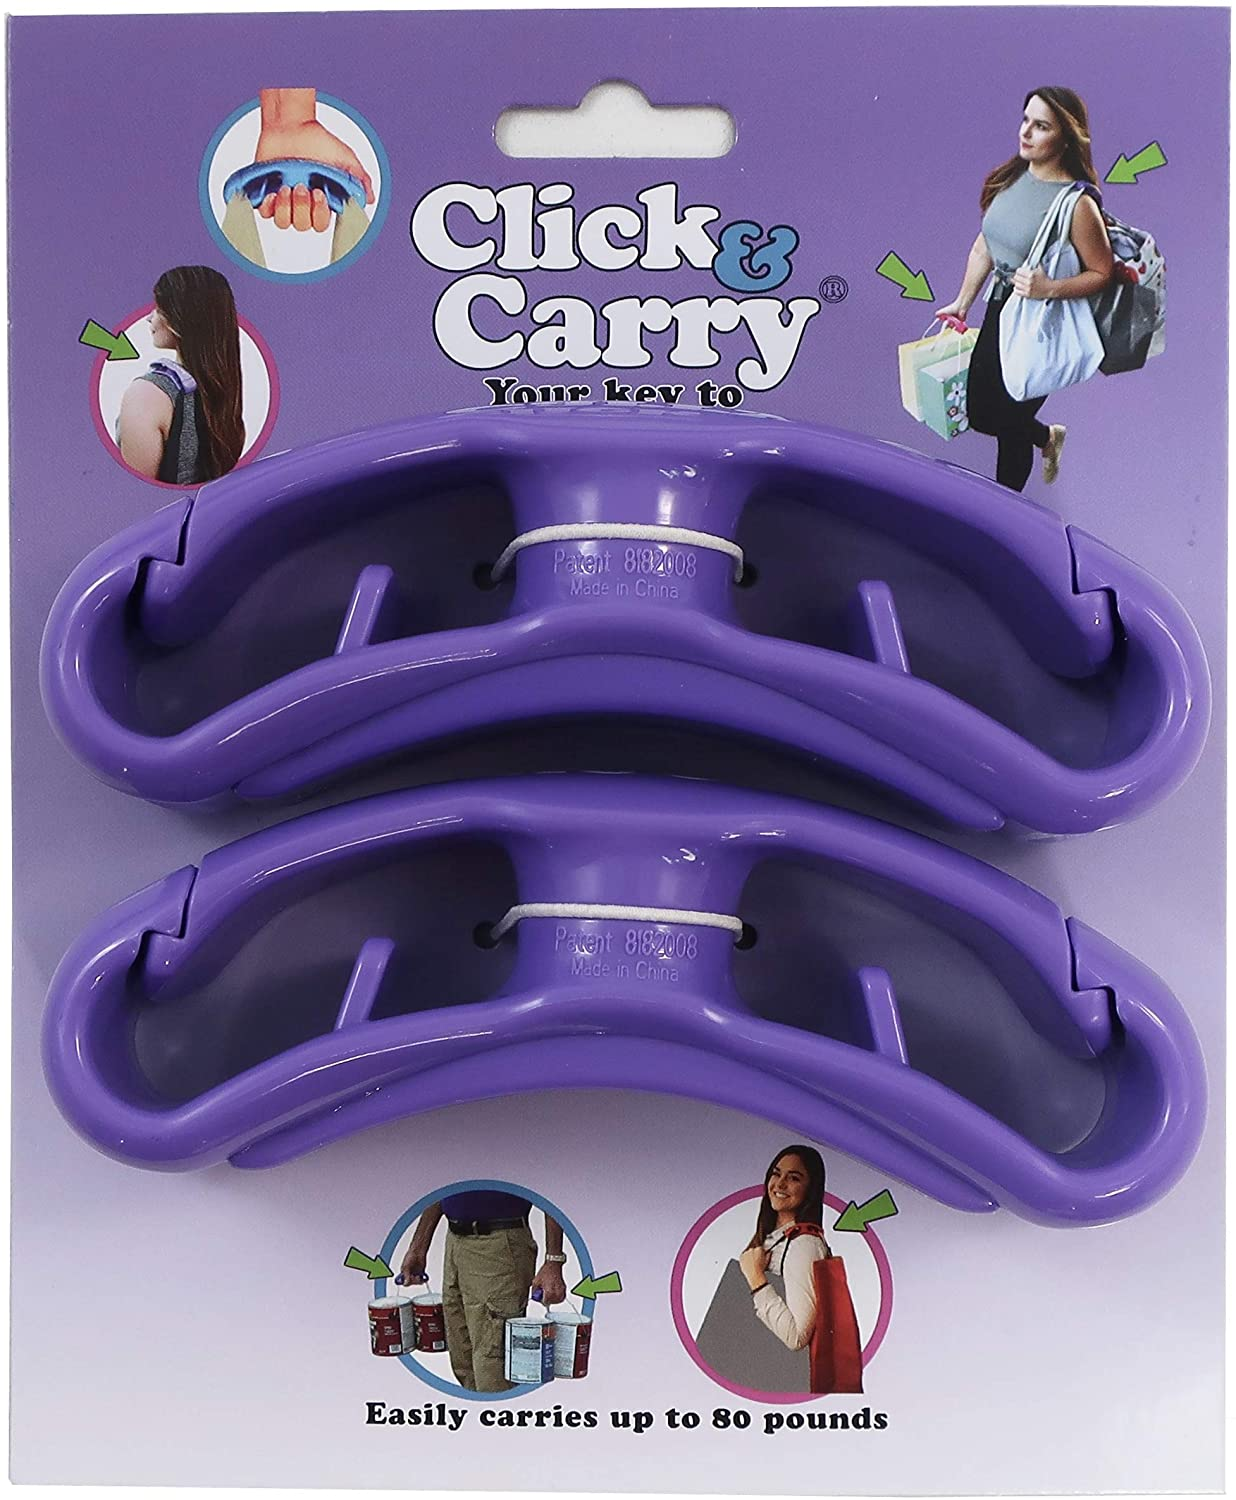 Click & Carry Grocery Bag Carrier with Soft Cushion Grip. Use as a Hands Free Grocery Bag Carrier, Plastic Bag Holder, Sports Gear Carrier & More. Click and Carry With Ease